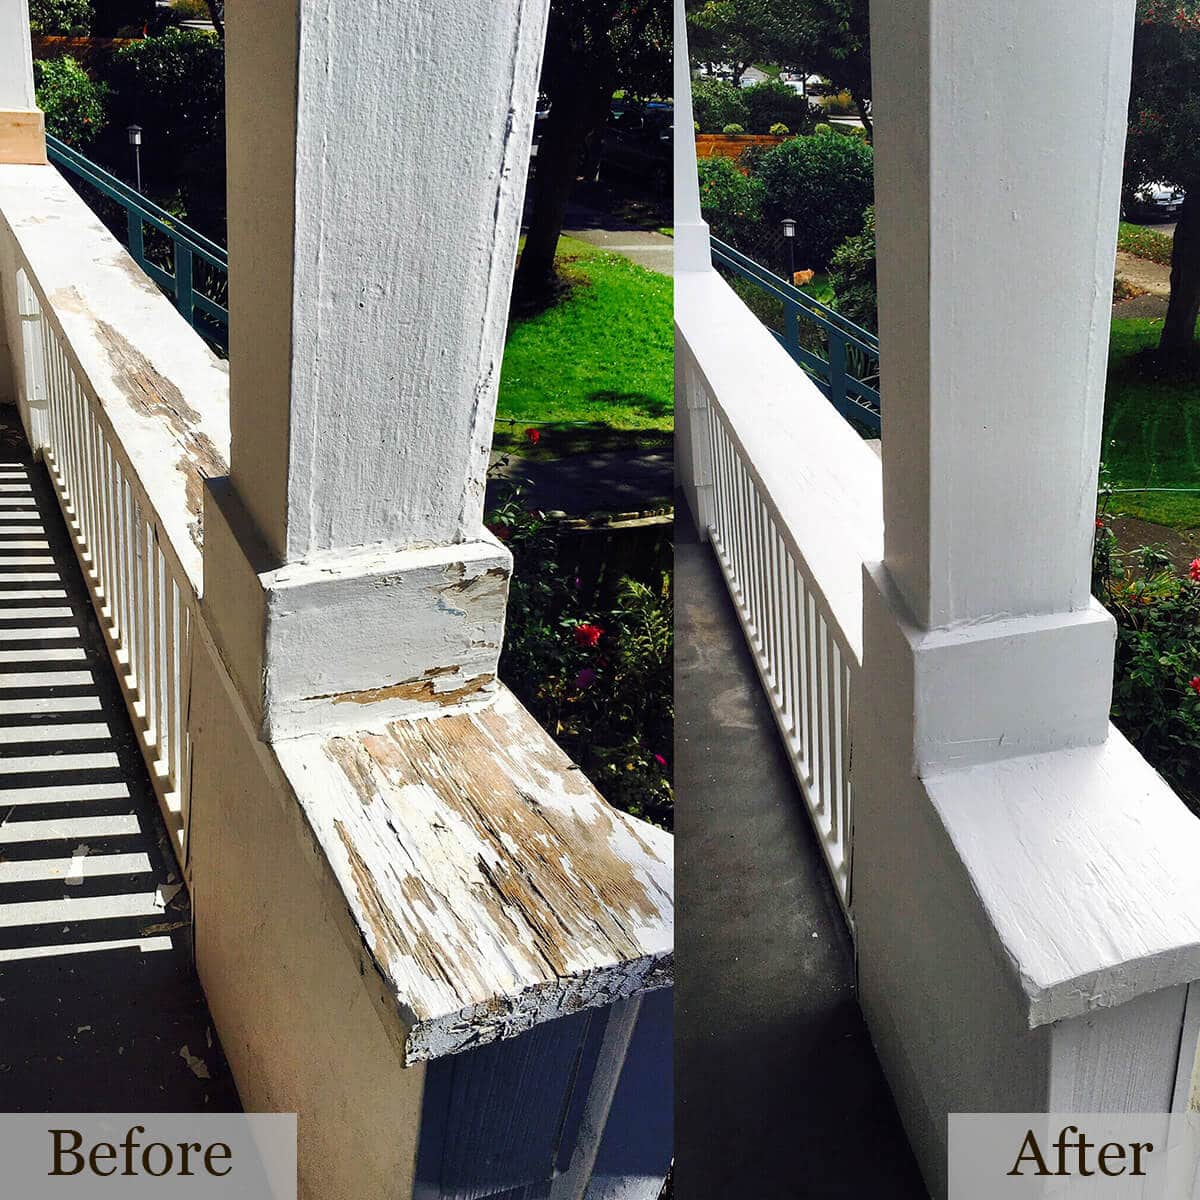 Before and After of a wooden fence painted white